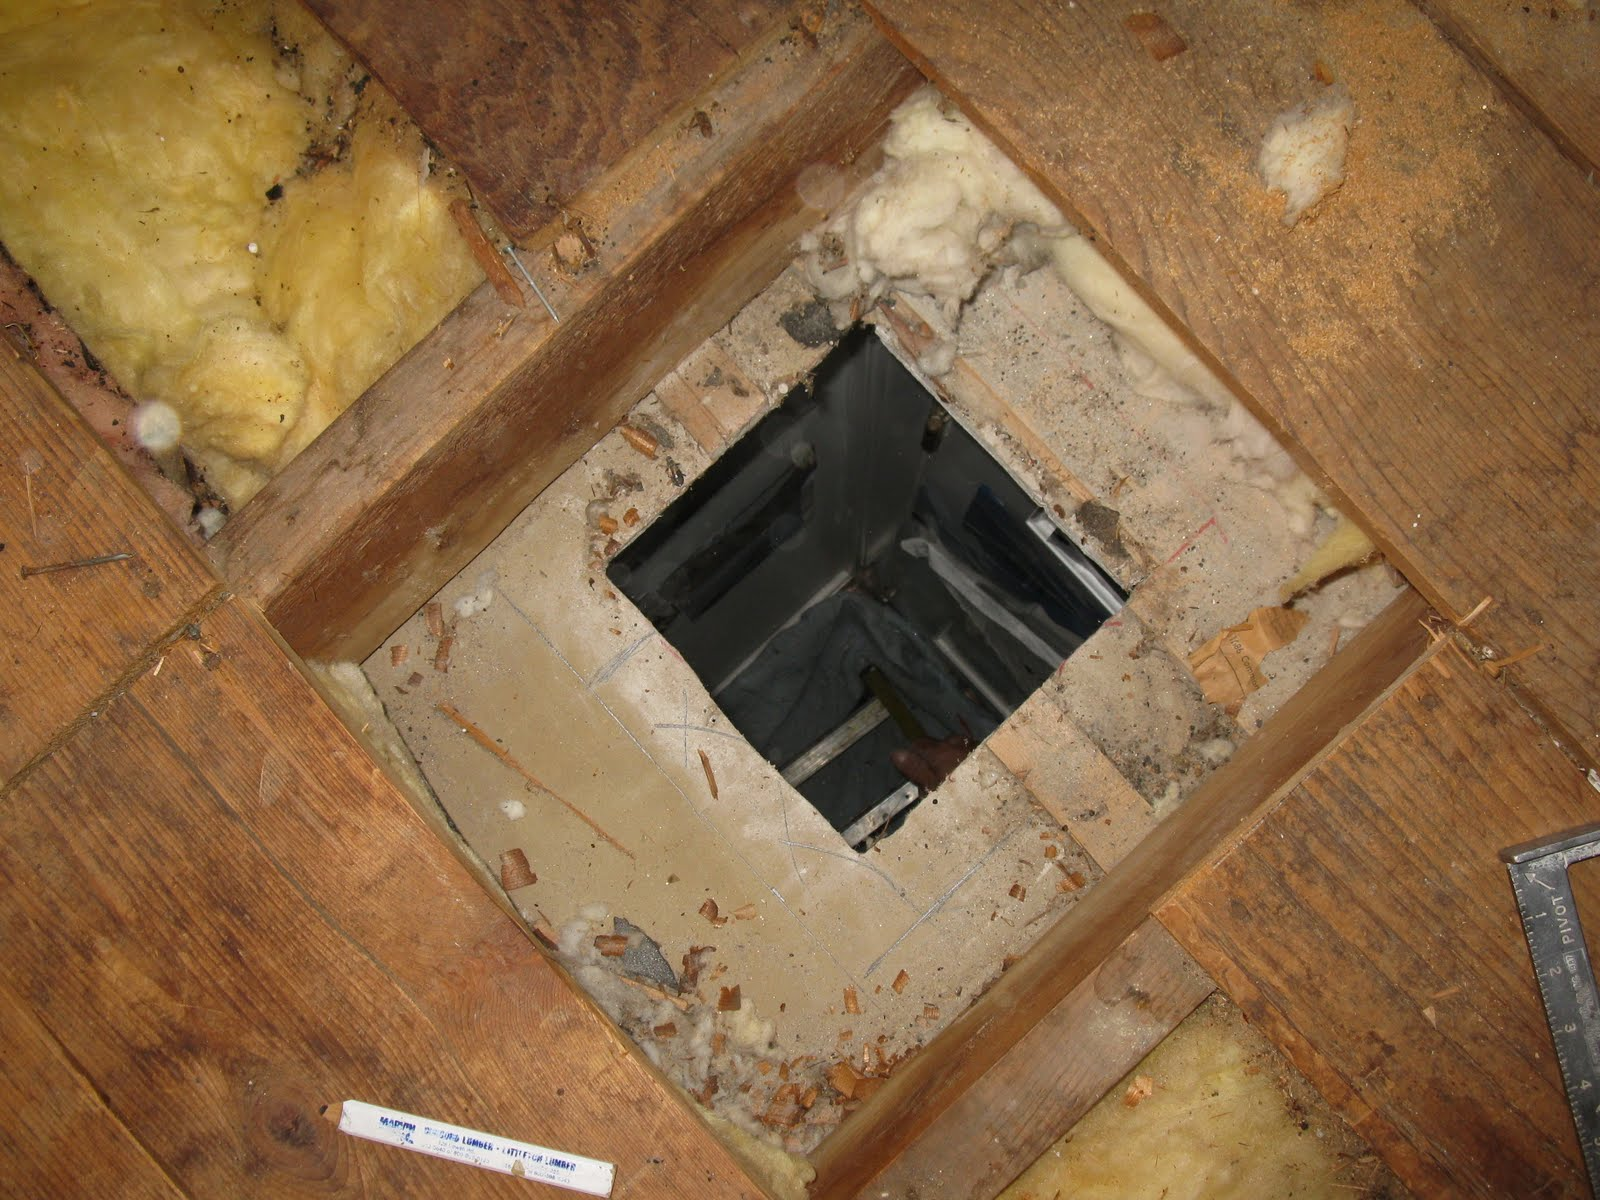 How to cut base molding around wall vent - Wood Blocking Was Added Around The Vent Box I Swear The Hvac Installers Don T Understand The Importance Of Adding Blocking